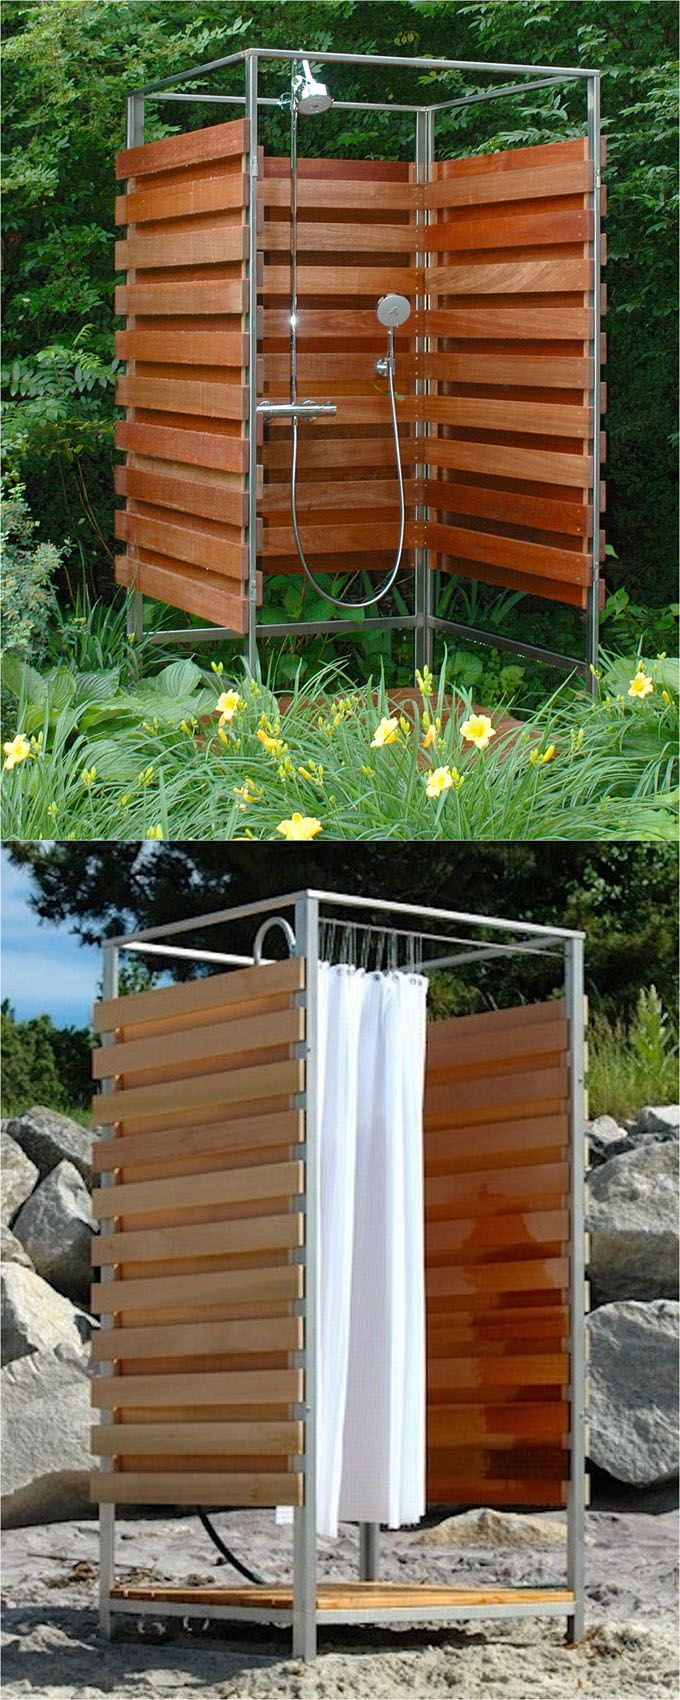 The 25+ Best Outdoor Showers Ideas On Pinterest | Outdoor Pool Shower,  Garden Shower And Pool Shower